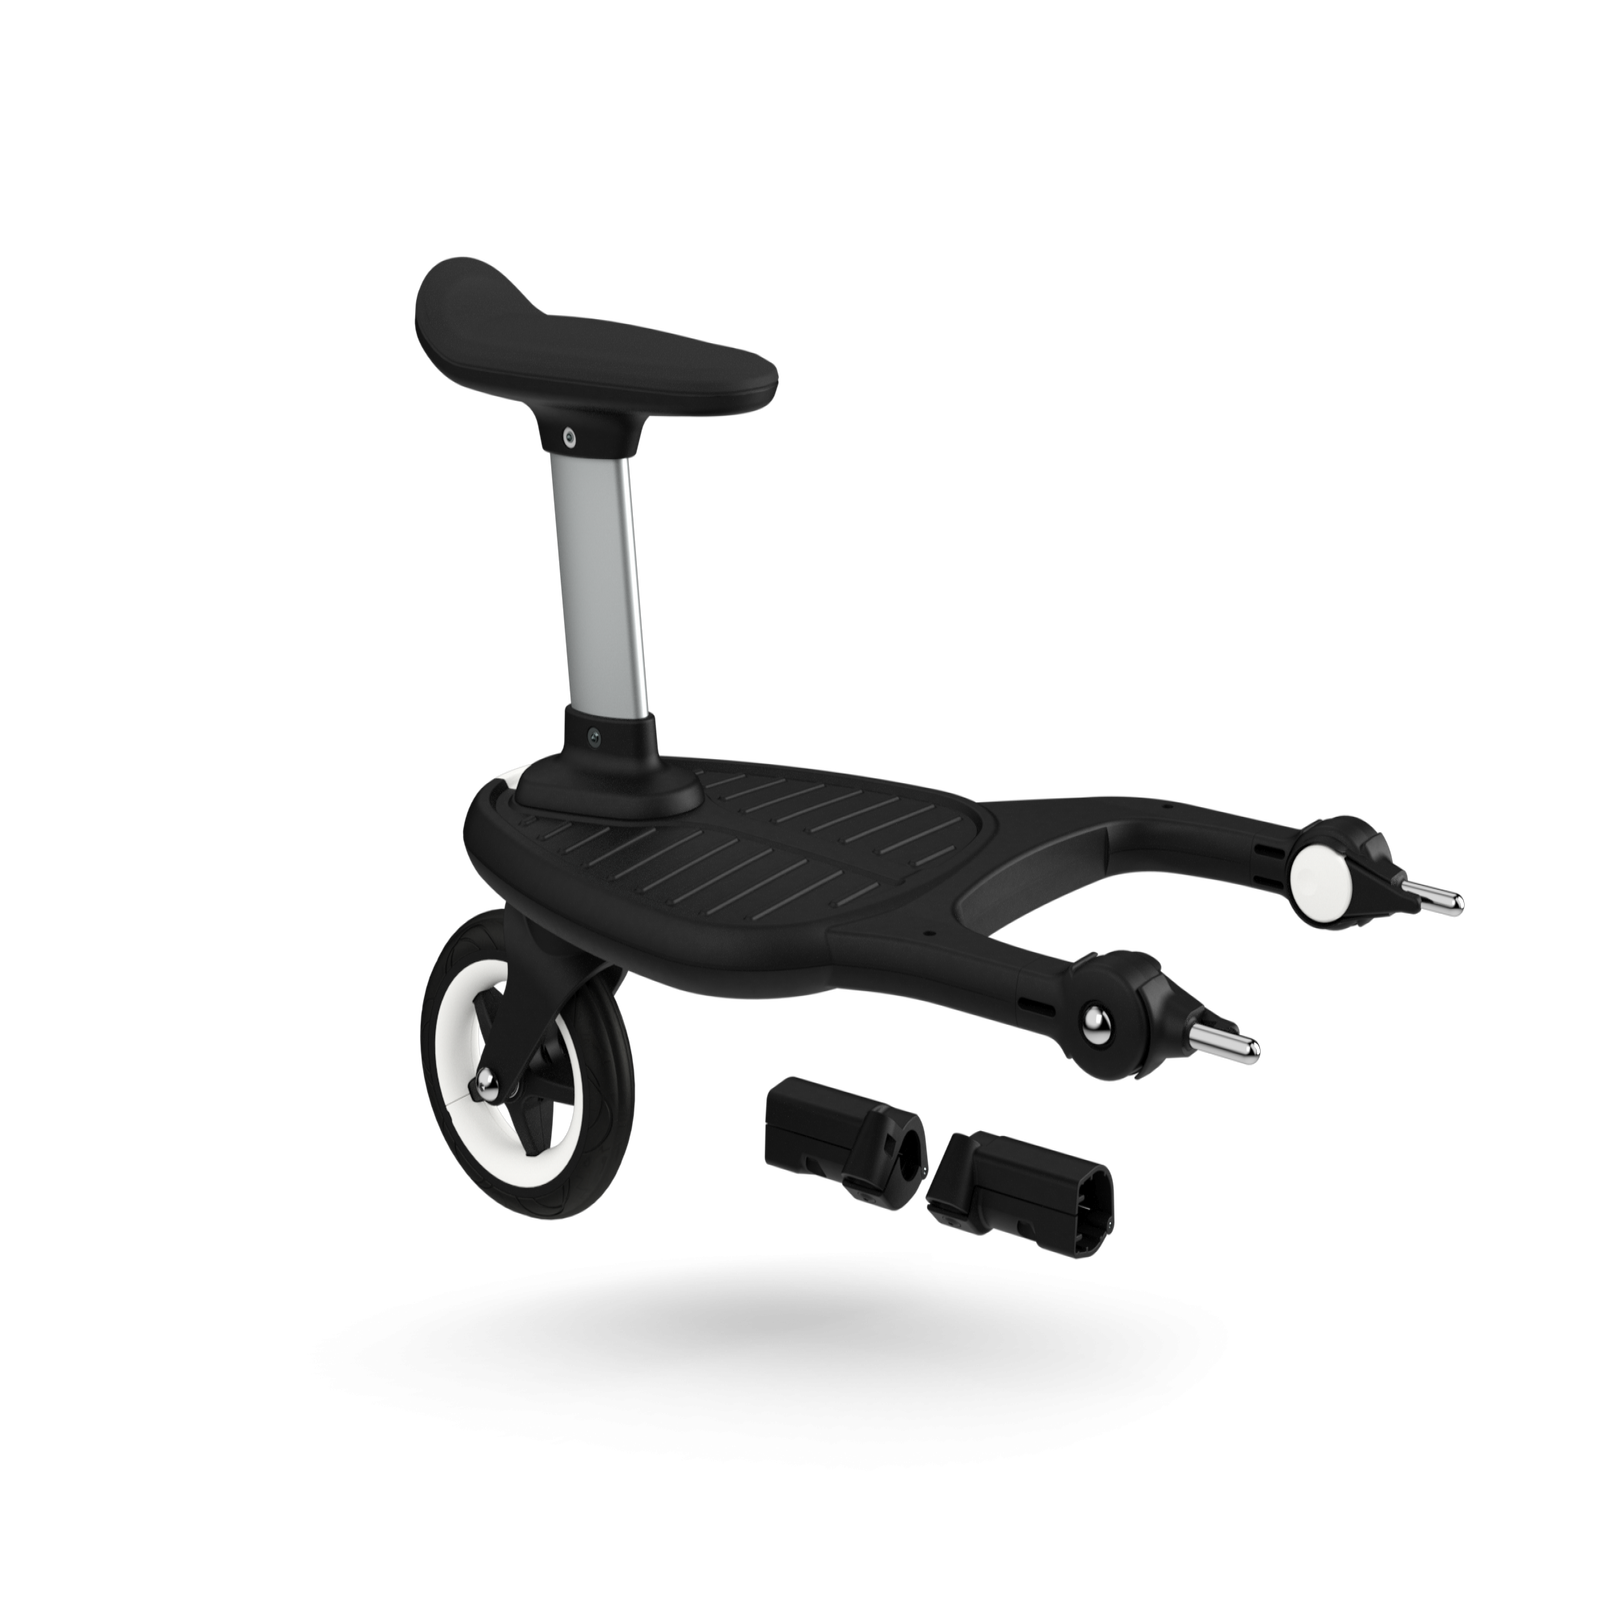 Bugaboo comfort wheeled board+ adapter for Bugaboo Cameleon3